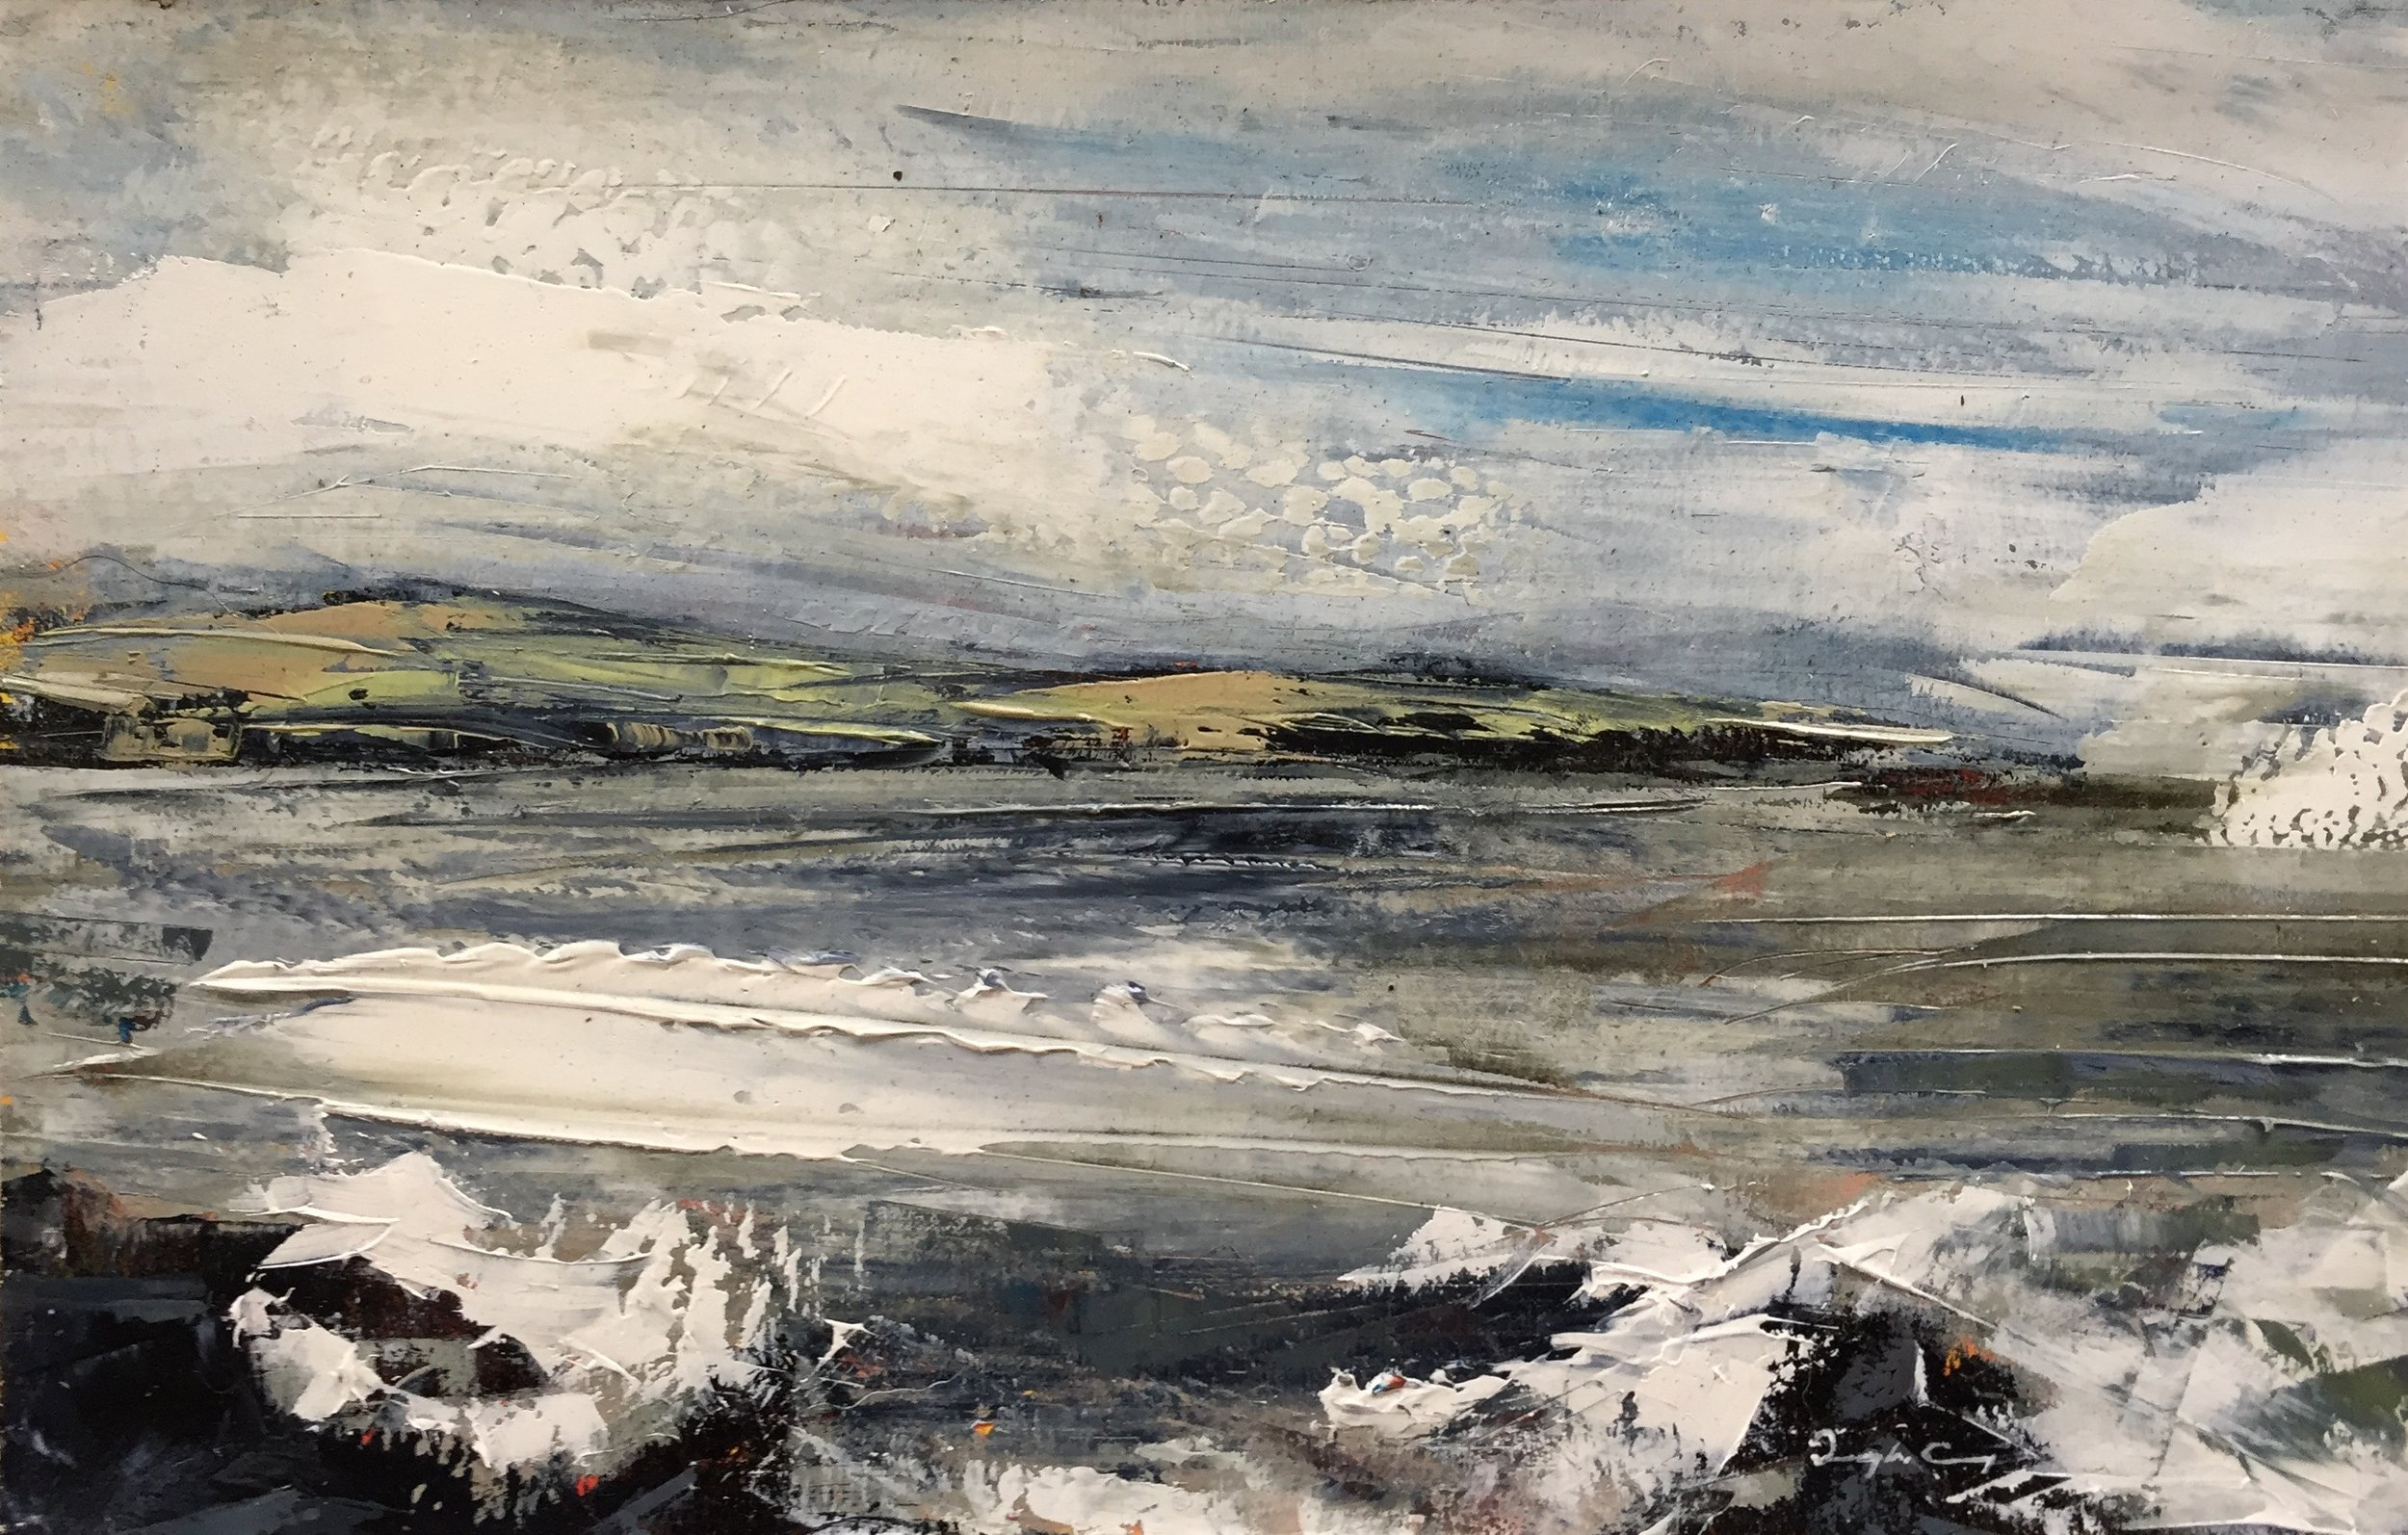 Crewe Bay, April 2018 ll  Painting 14cm x 22.5cm. Oil on board.